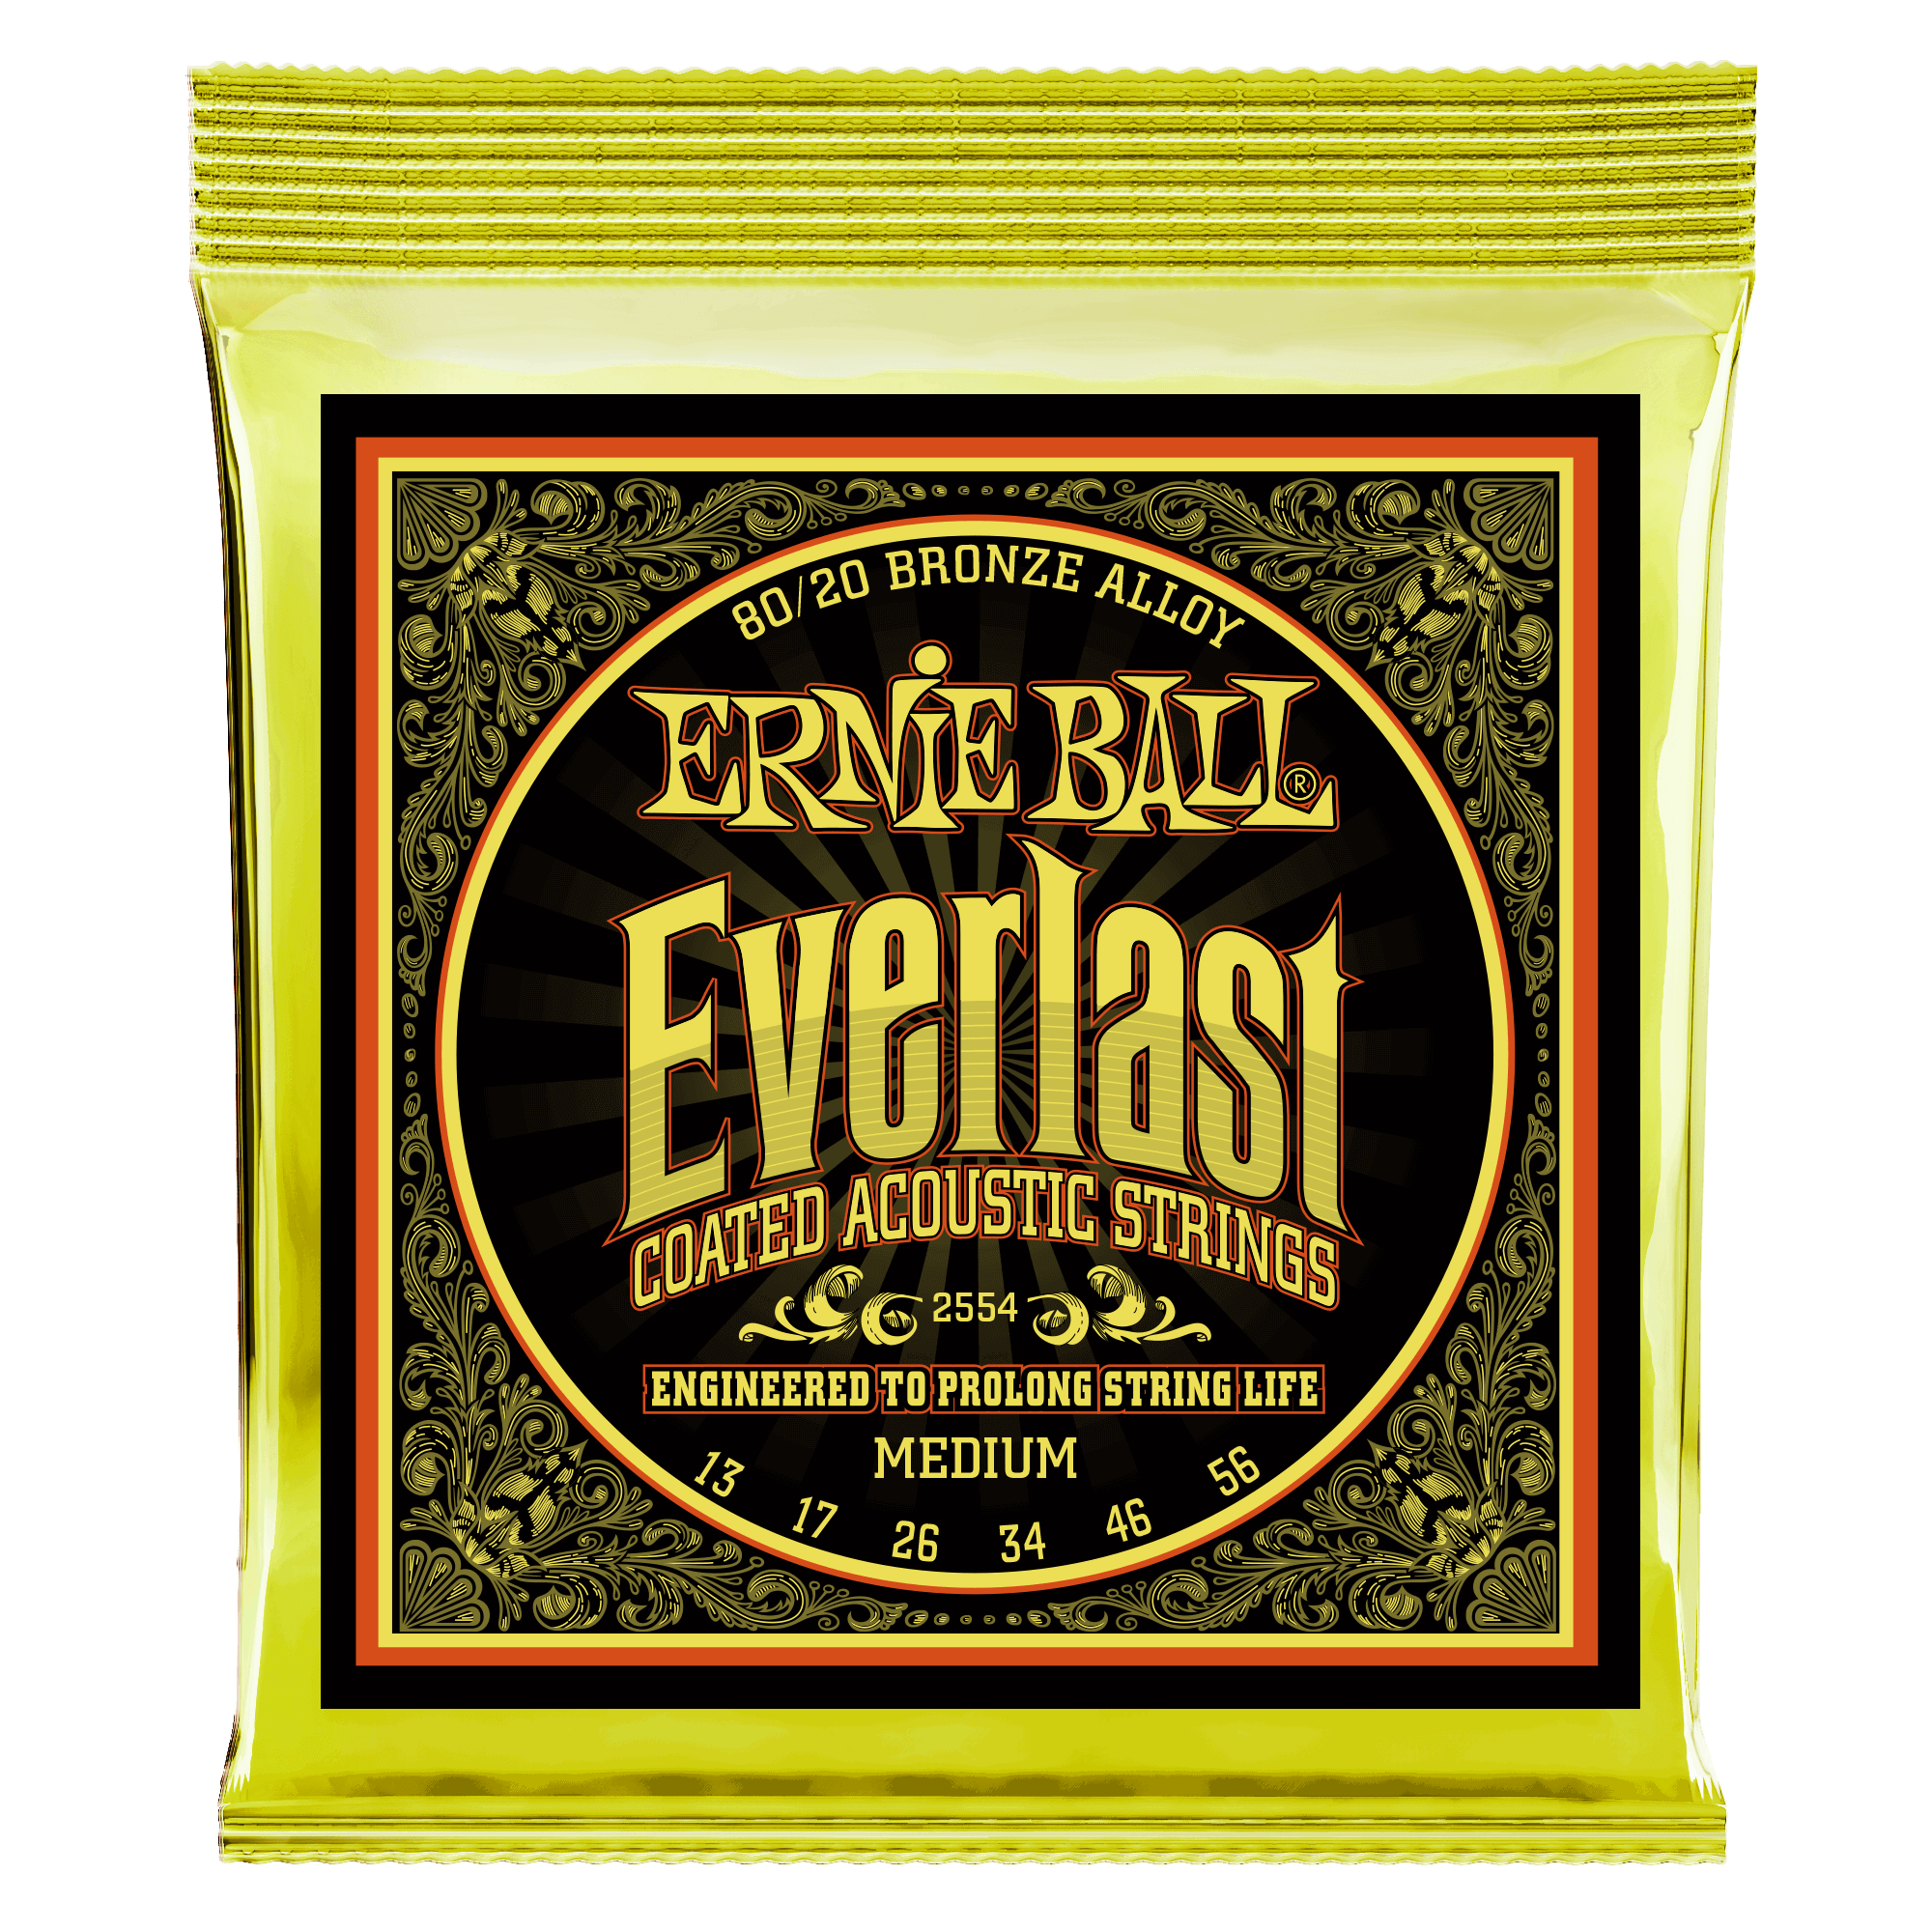 everlast coated 80 20 bronze acoustic guitar strings ernie ball. Black Bedroom Furniture Sets. Home Design Ideas